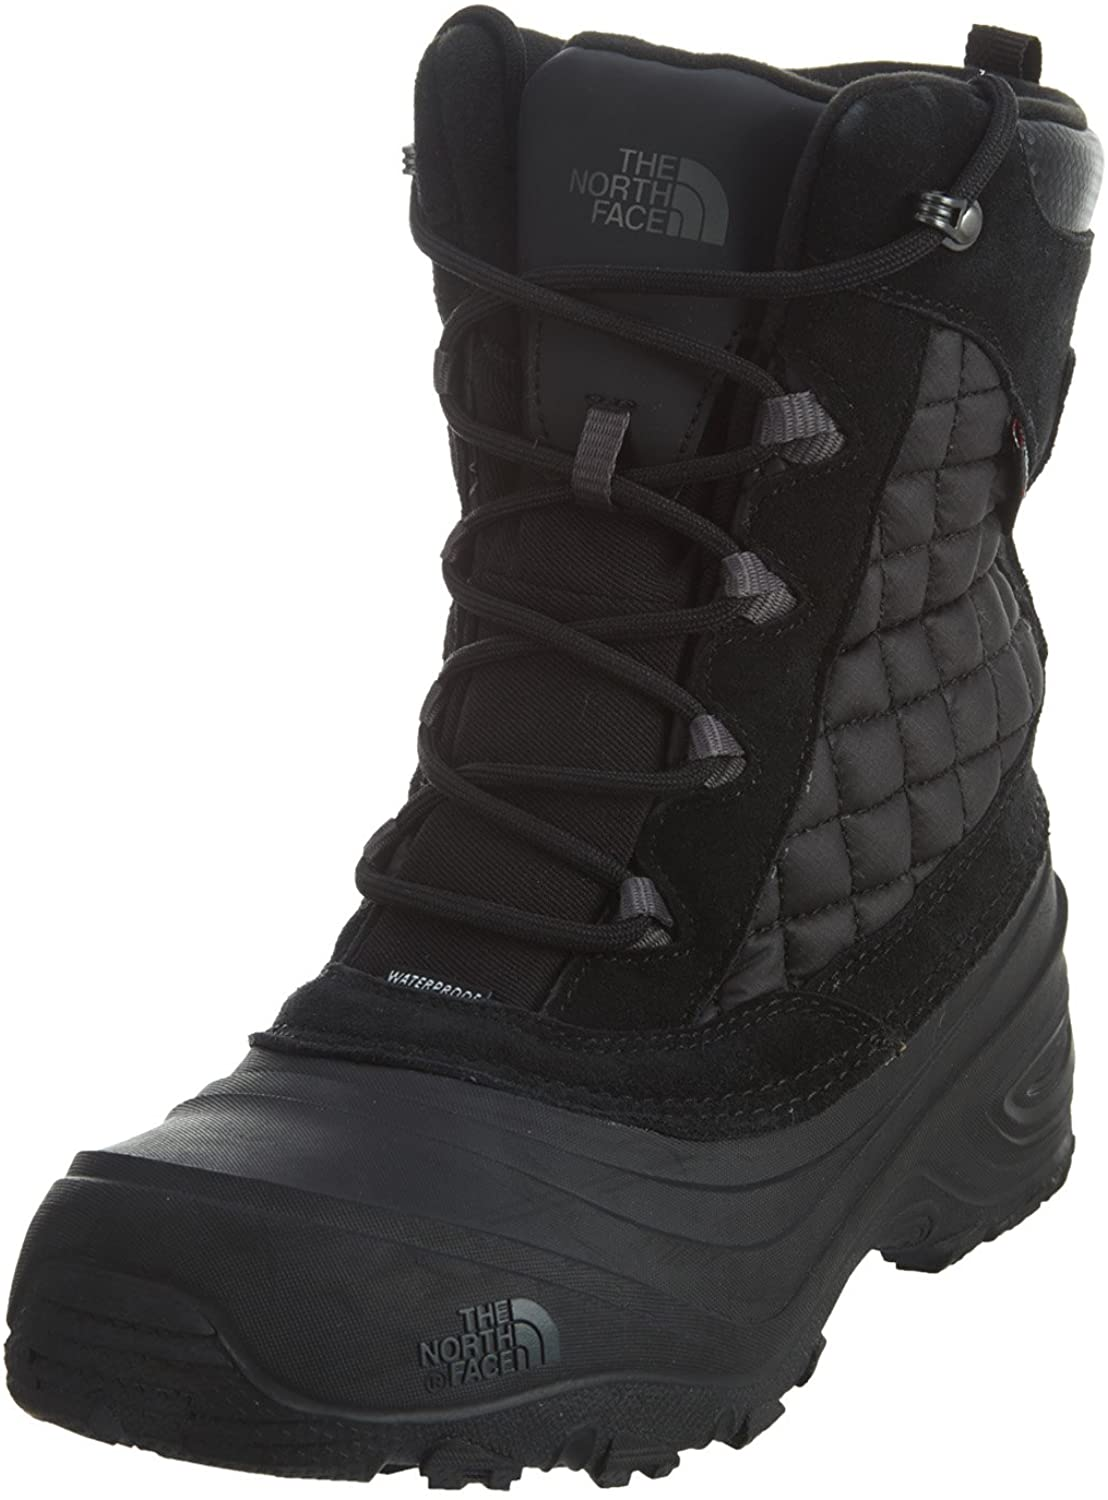 The North Face Boys' Thermoball Utility Boots (Toddler Sizes 10-12)